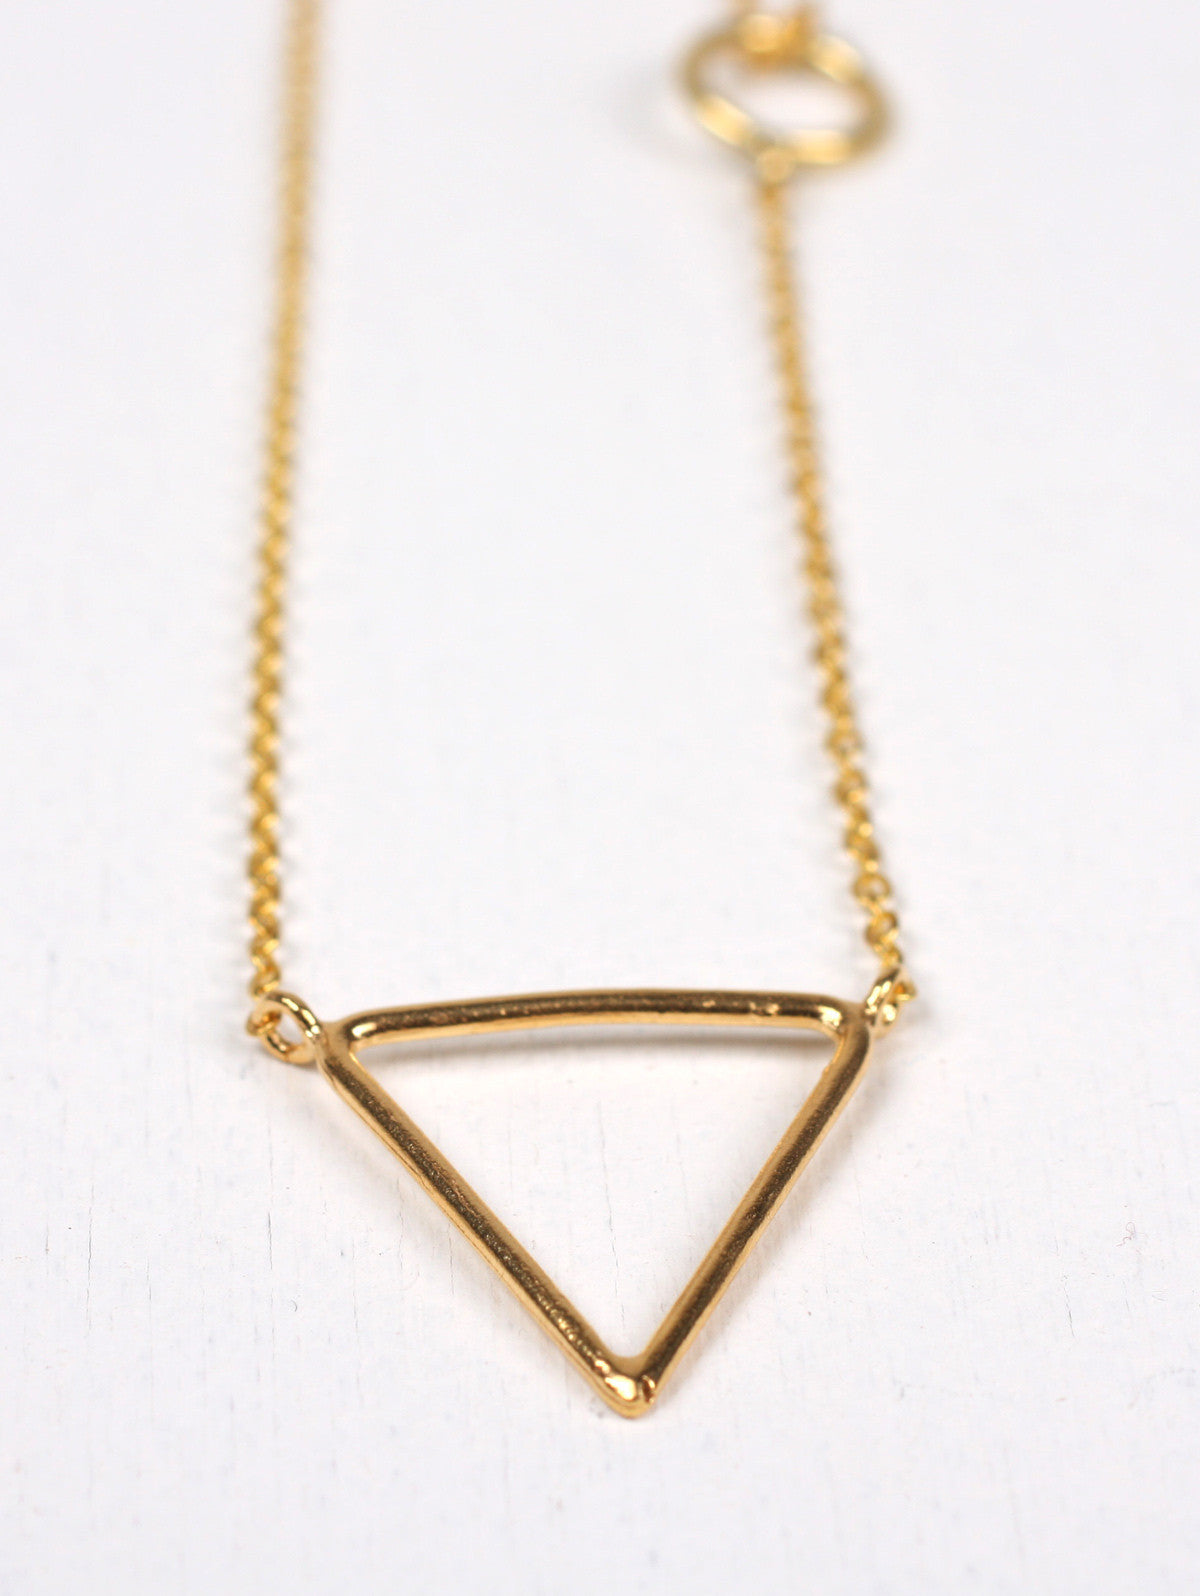 Gold Pyramid Necklaces